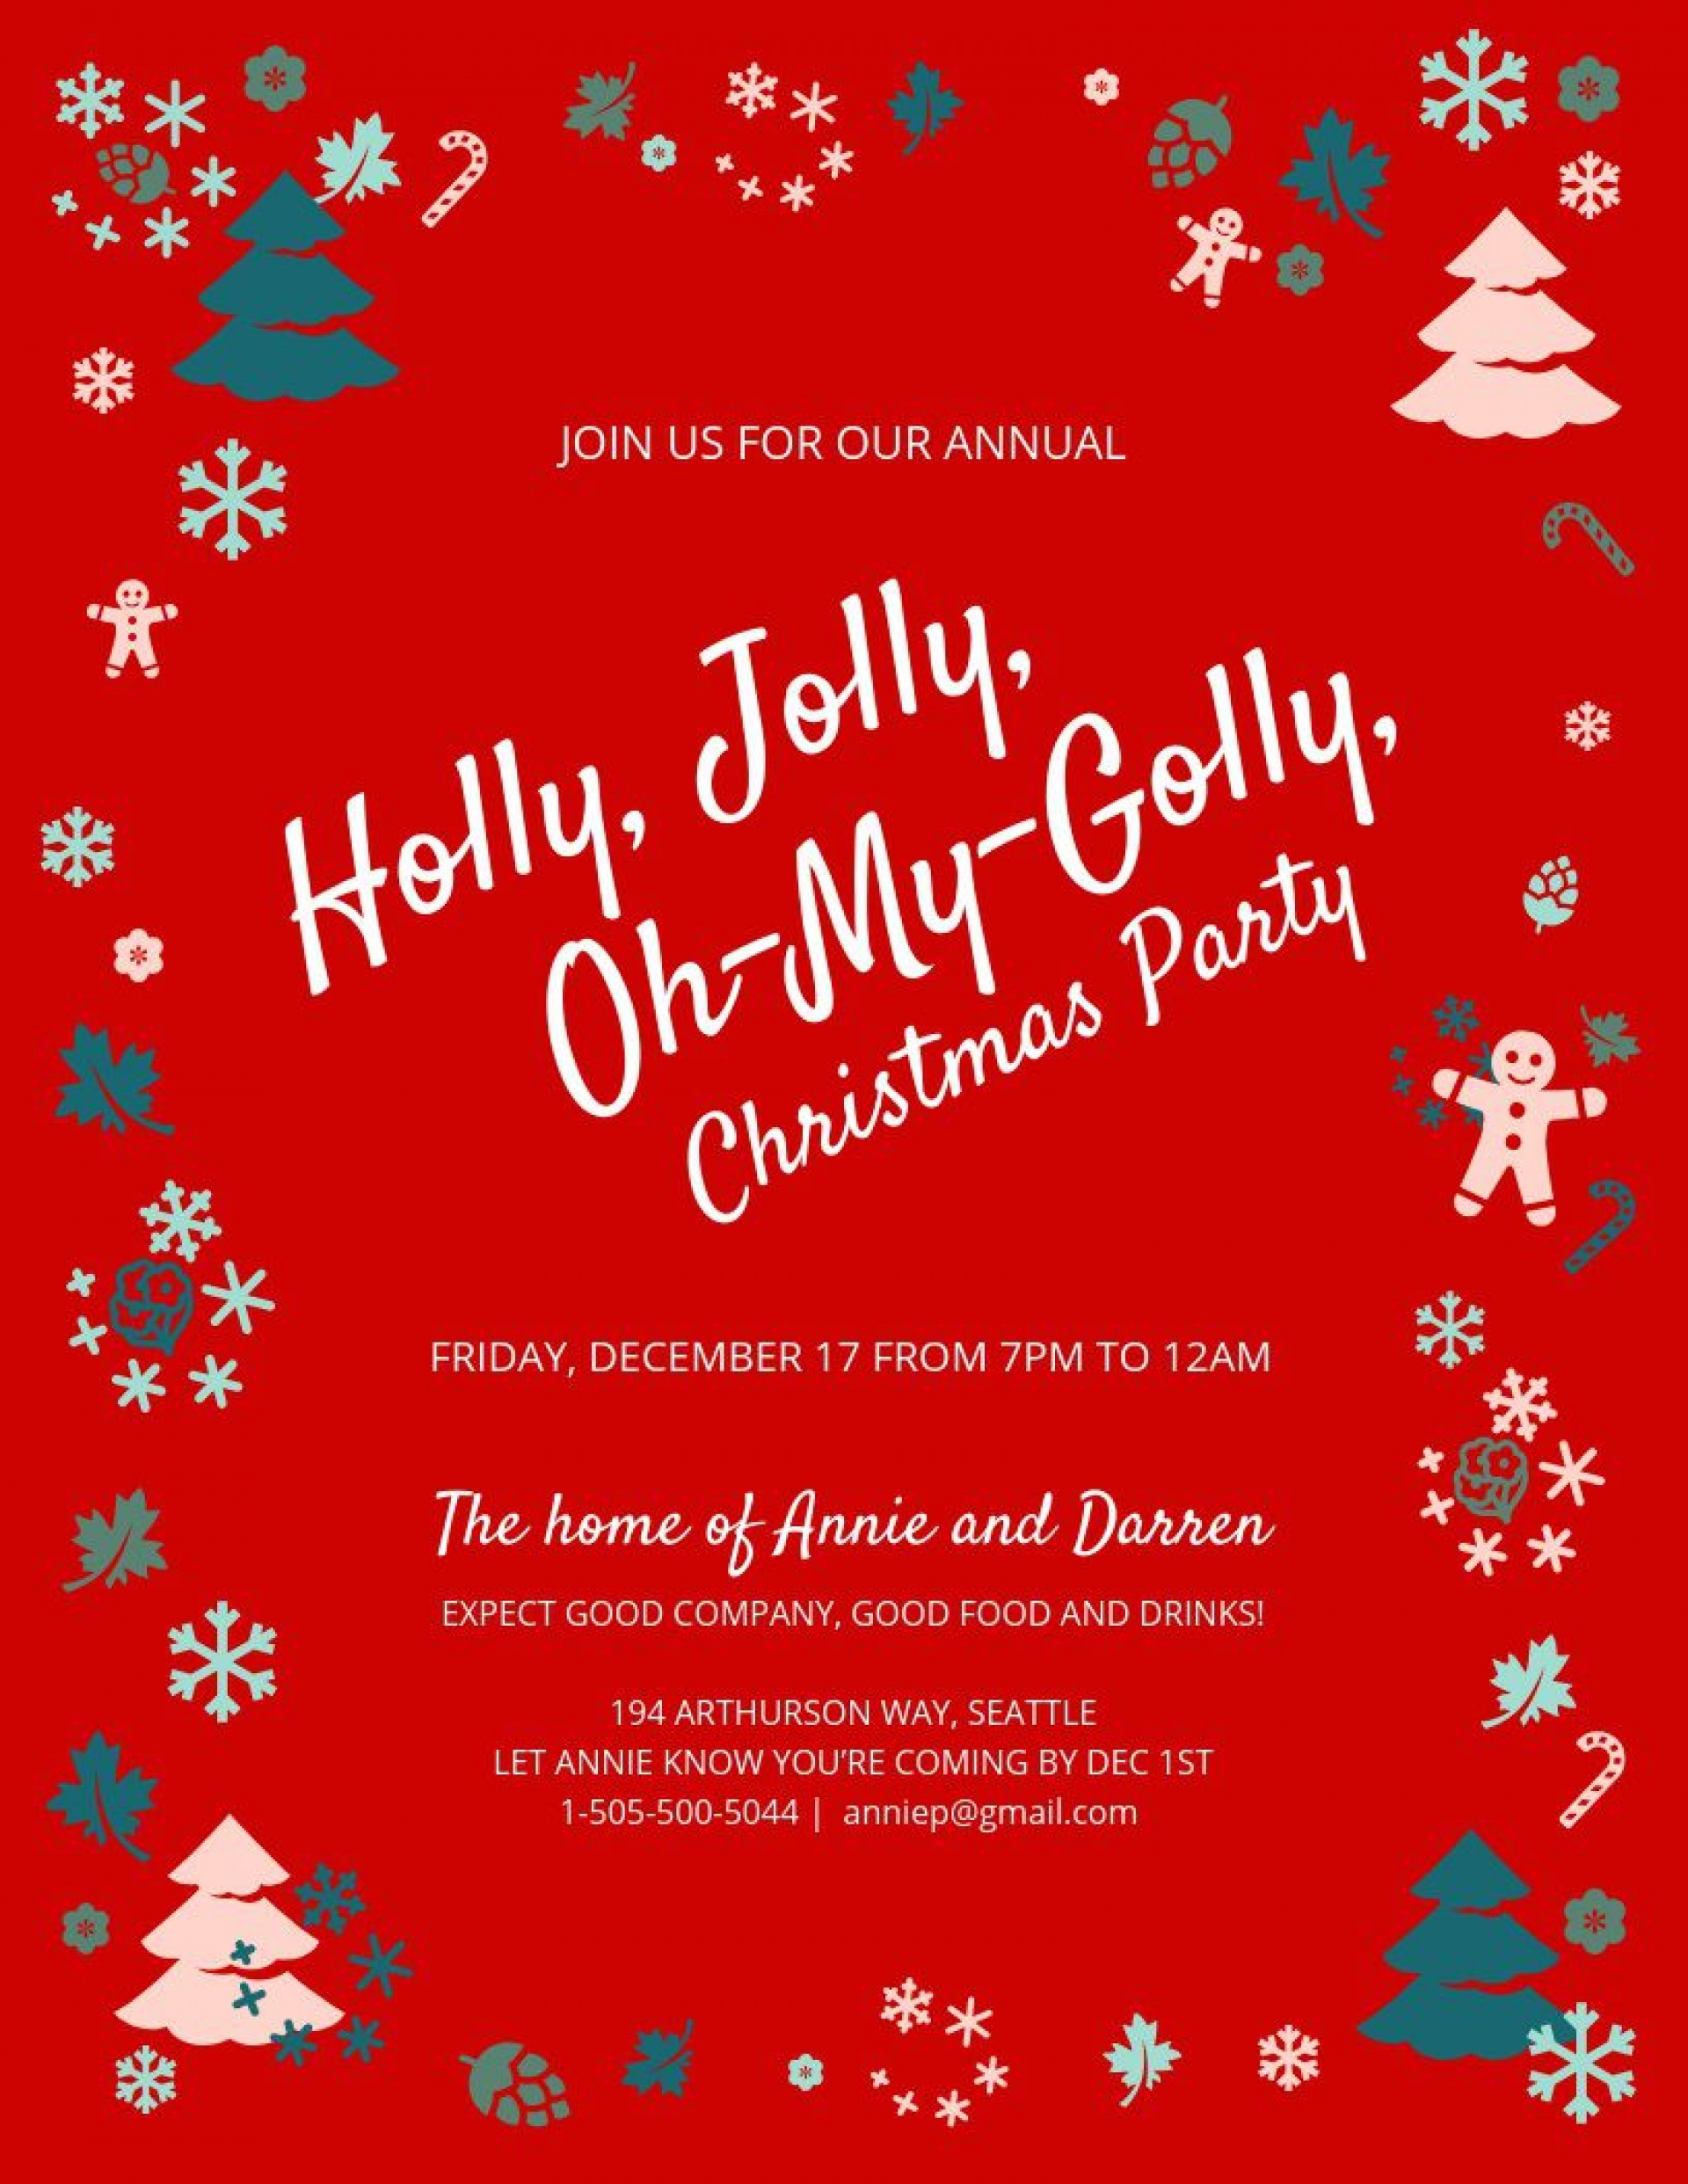 004 Outstanding Christma Party Invite Template Sample  Microsoft Word Free Download Holiday Invitation Powerpoint1920